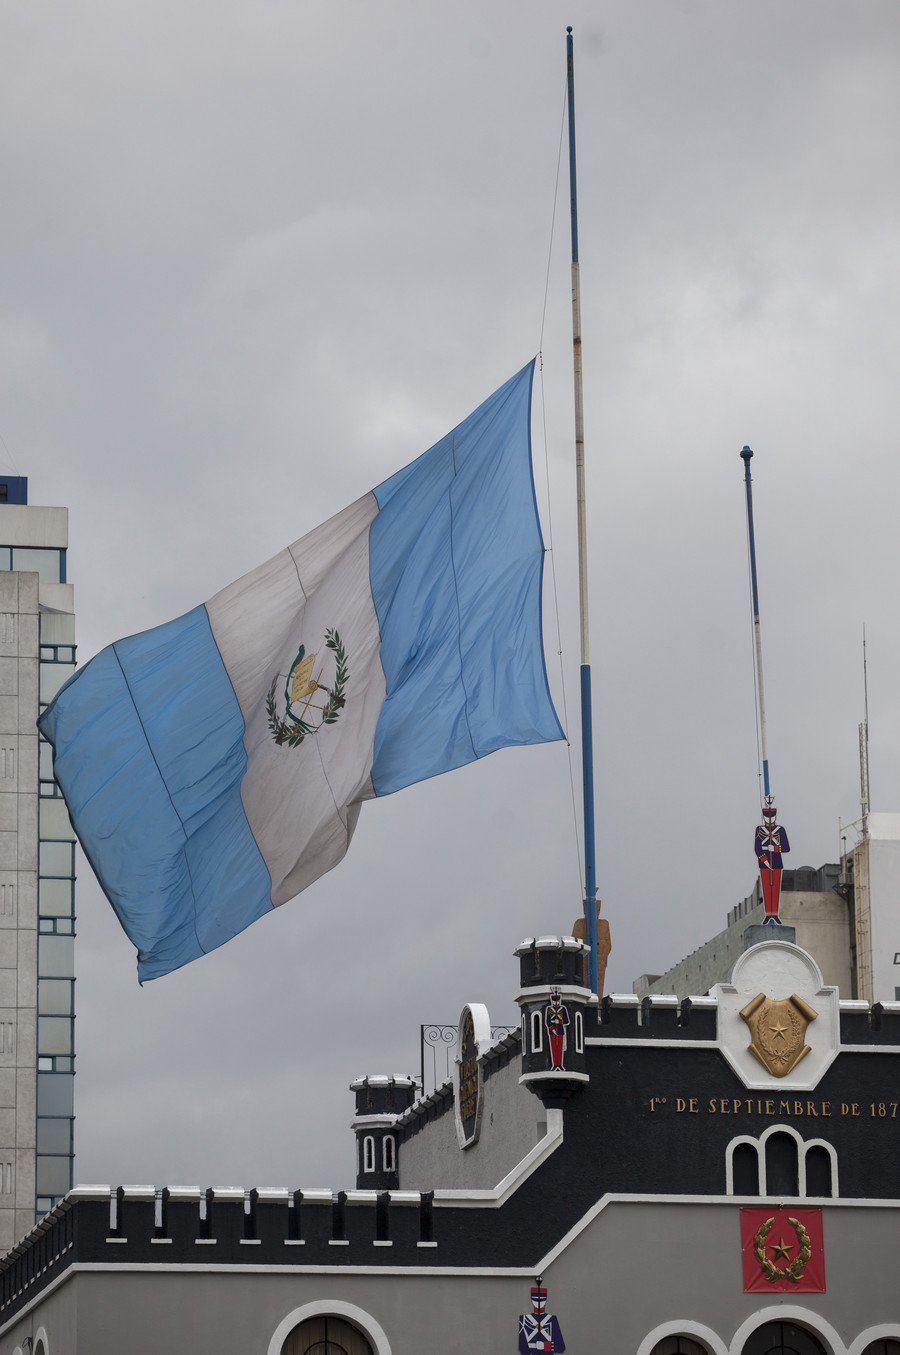 Guatemalan flag flies over new embassy building in Jerusalem (PHOTO)